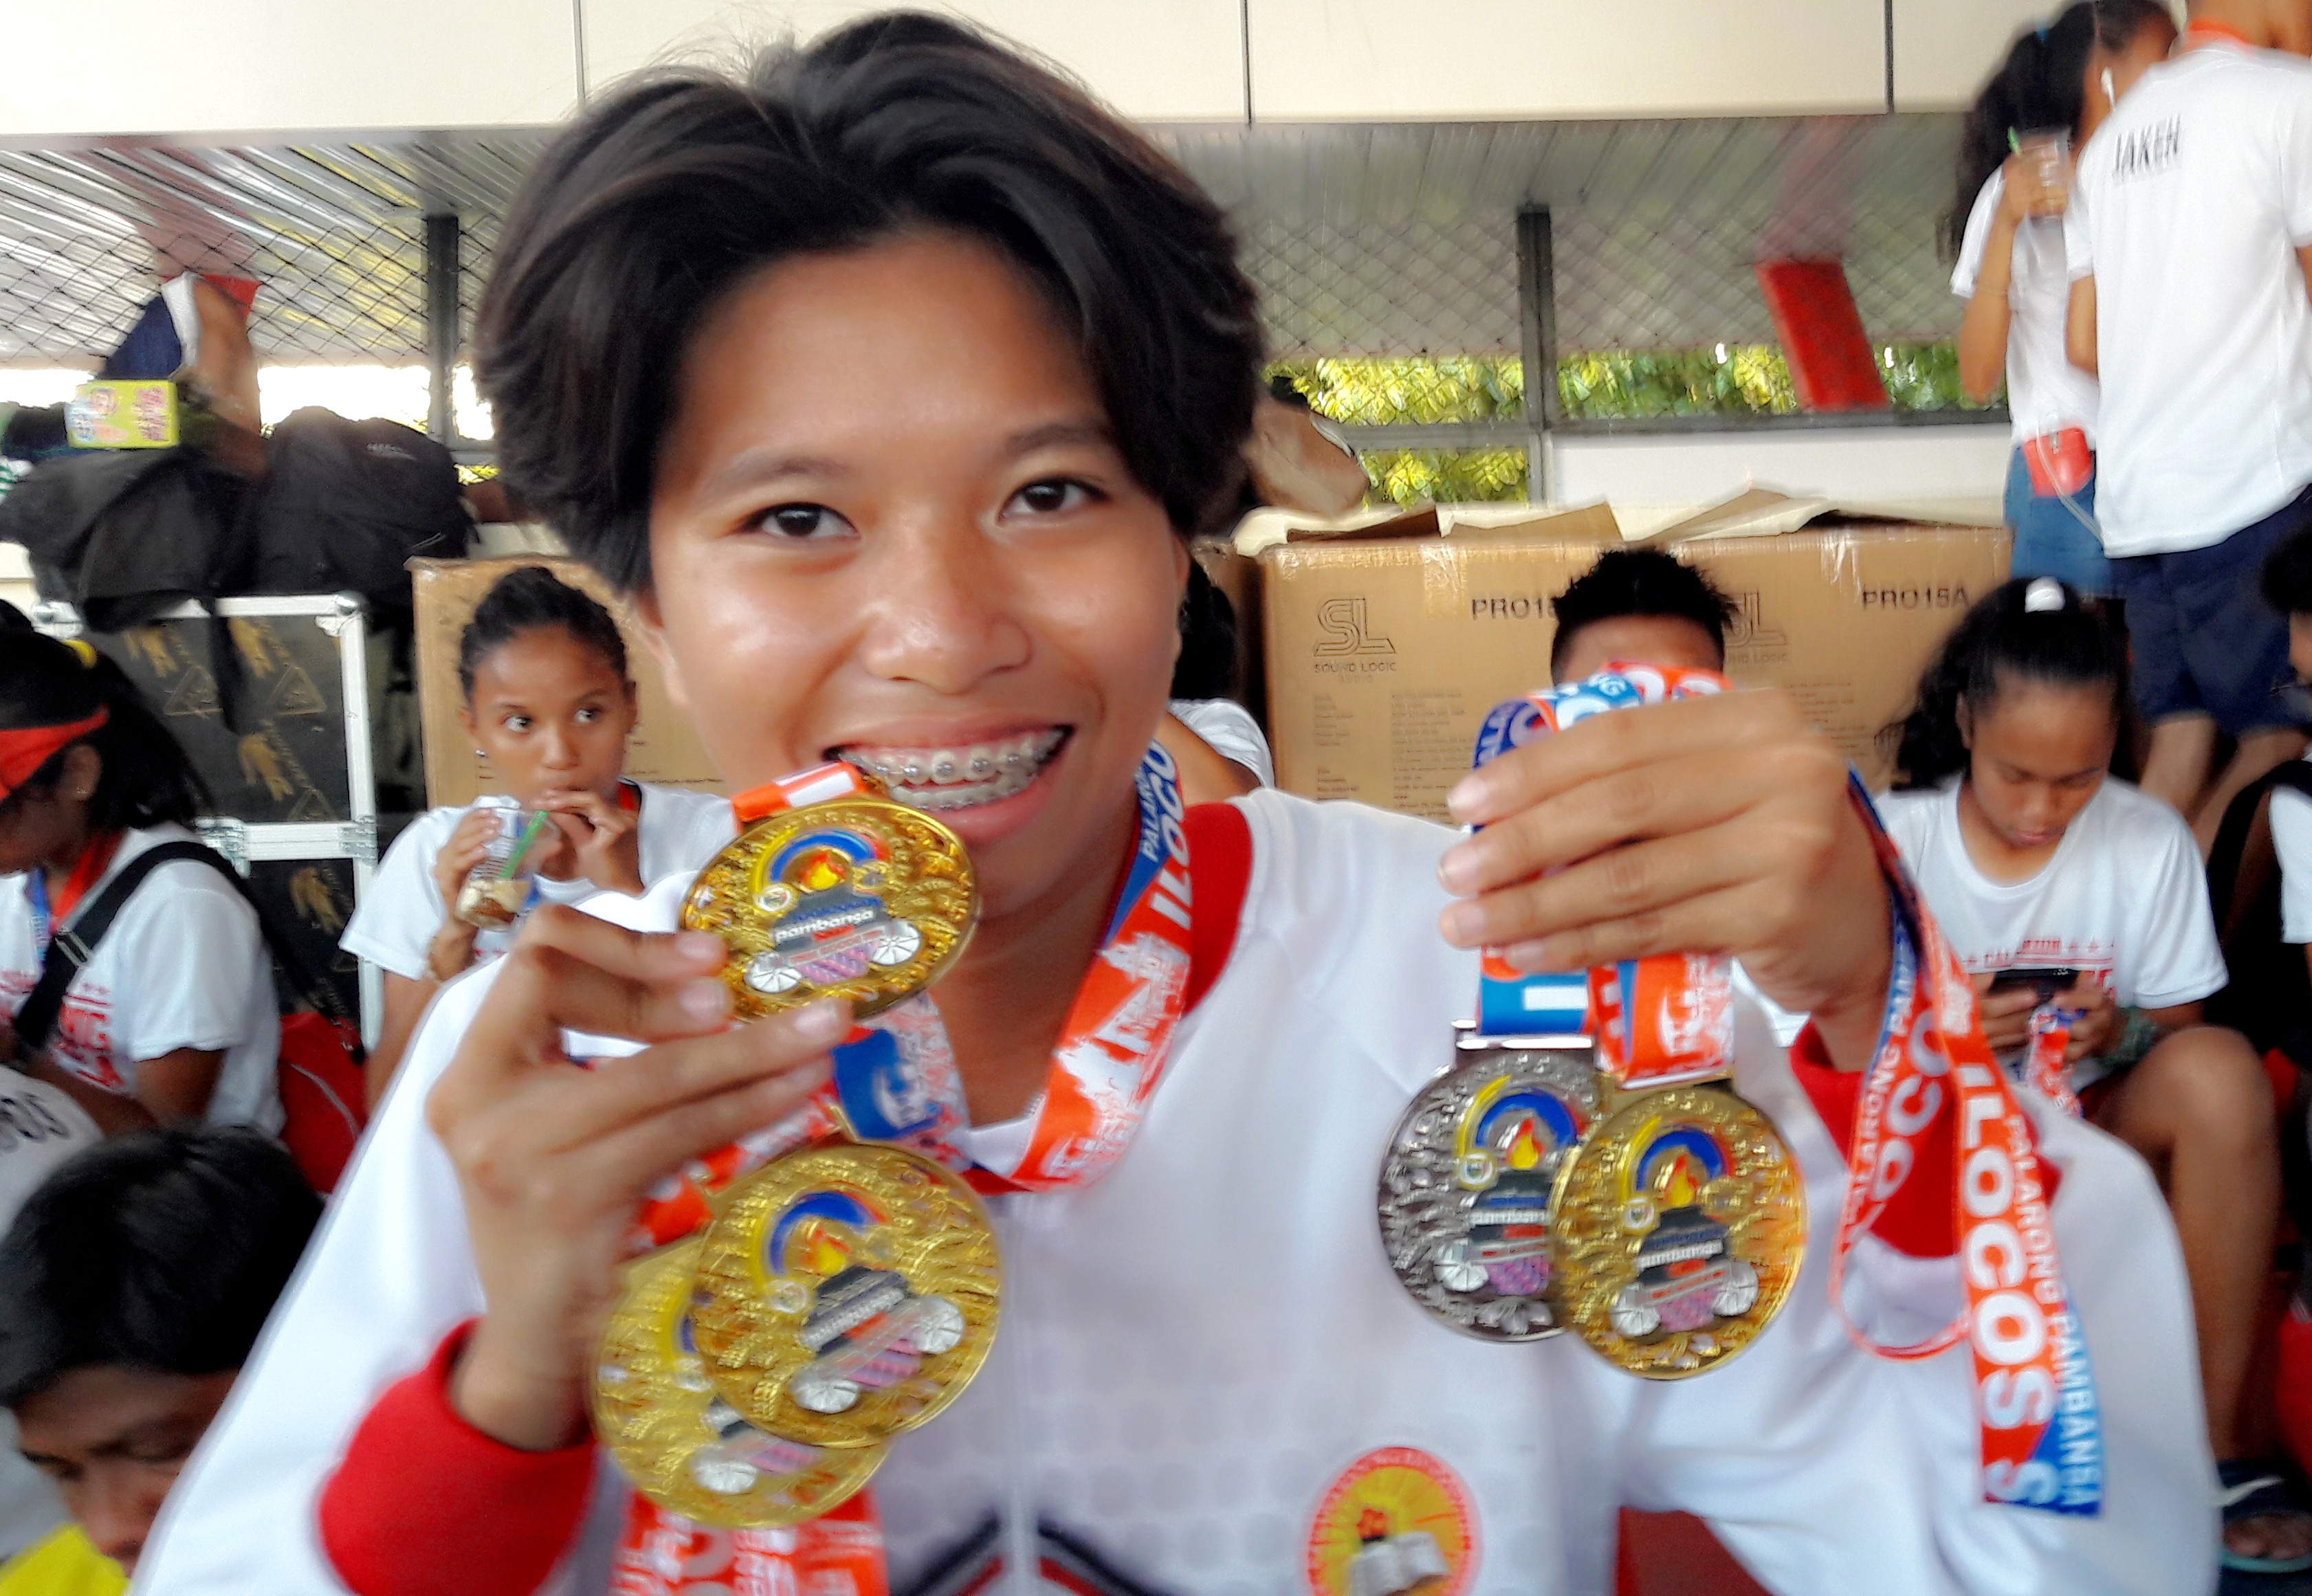 GOLDEN GIRL. Jessel Lumapas collects 4 gold medals and a silver in athletics. Photo by Mau Victa/Rappler